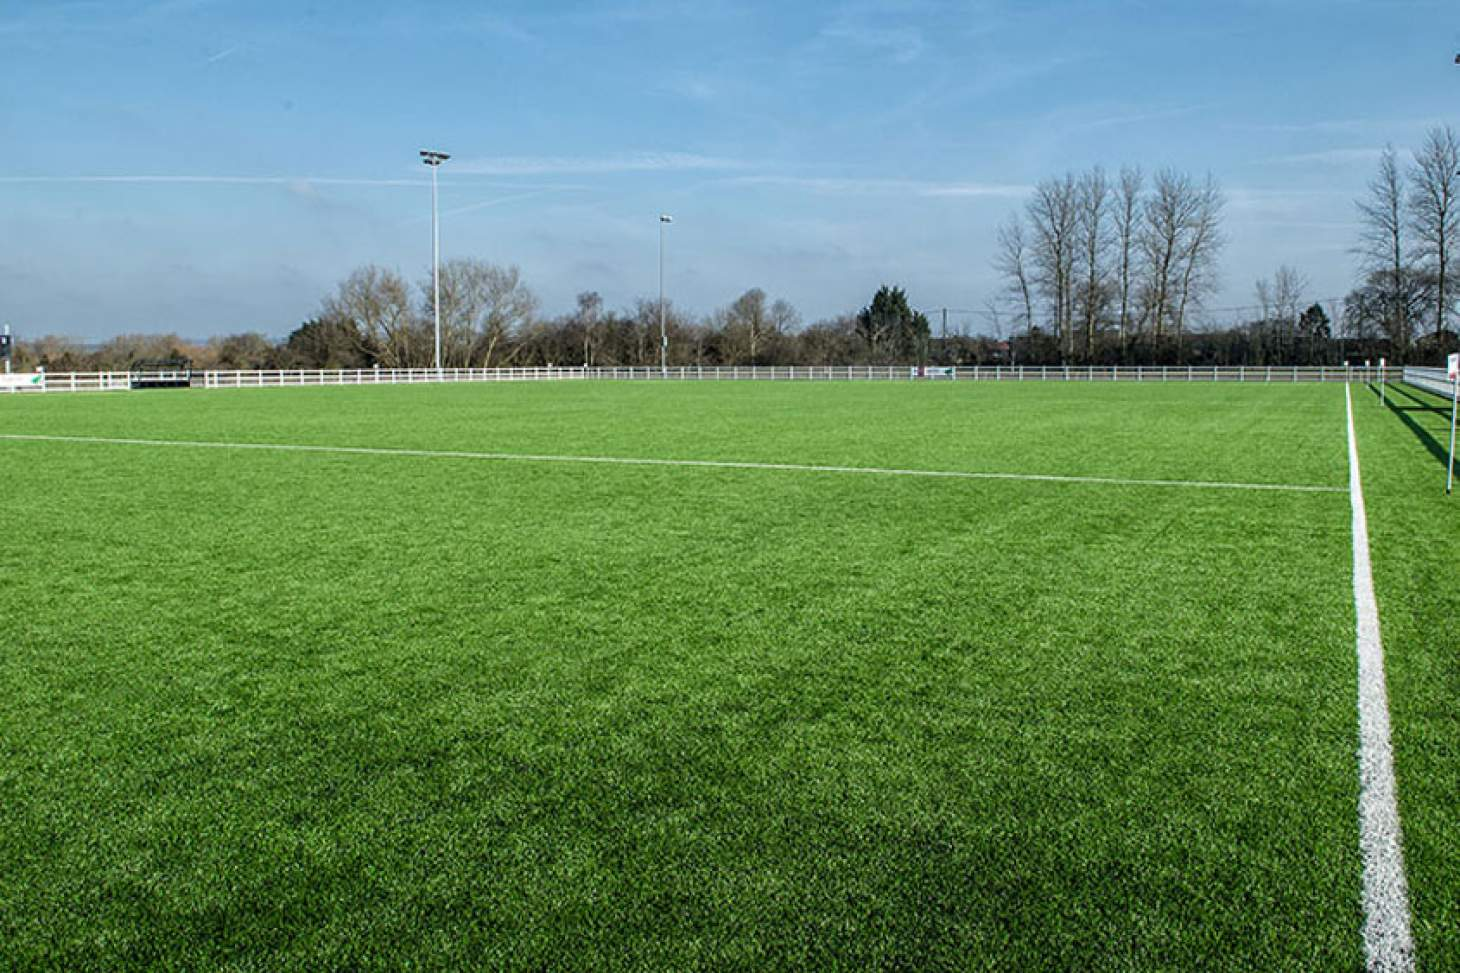 PlayFootball Bedford 8 a side | 3G Astroturf football pitch